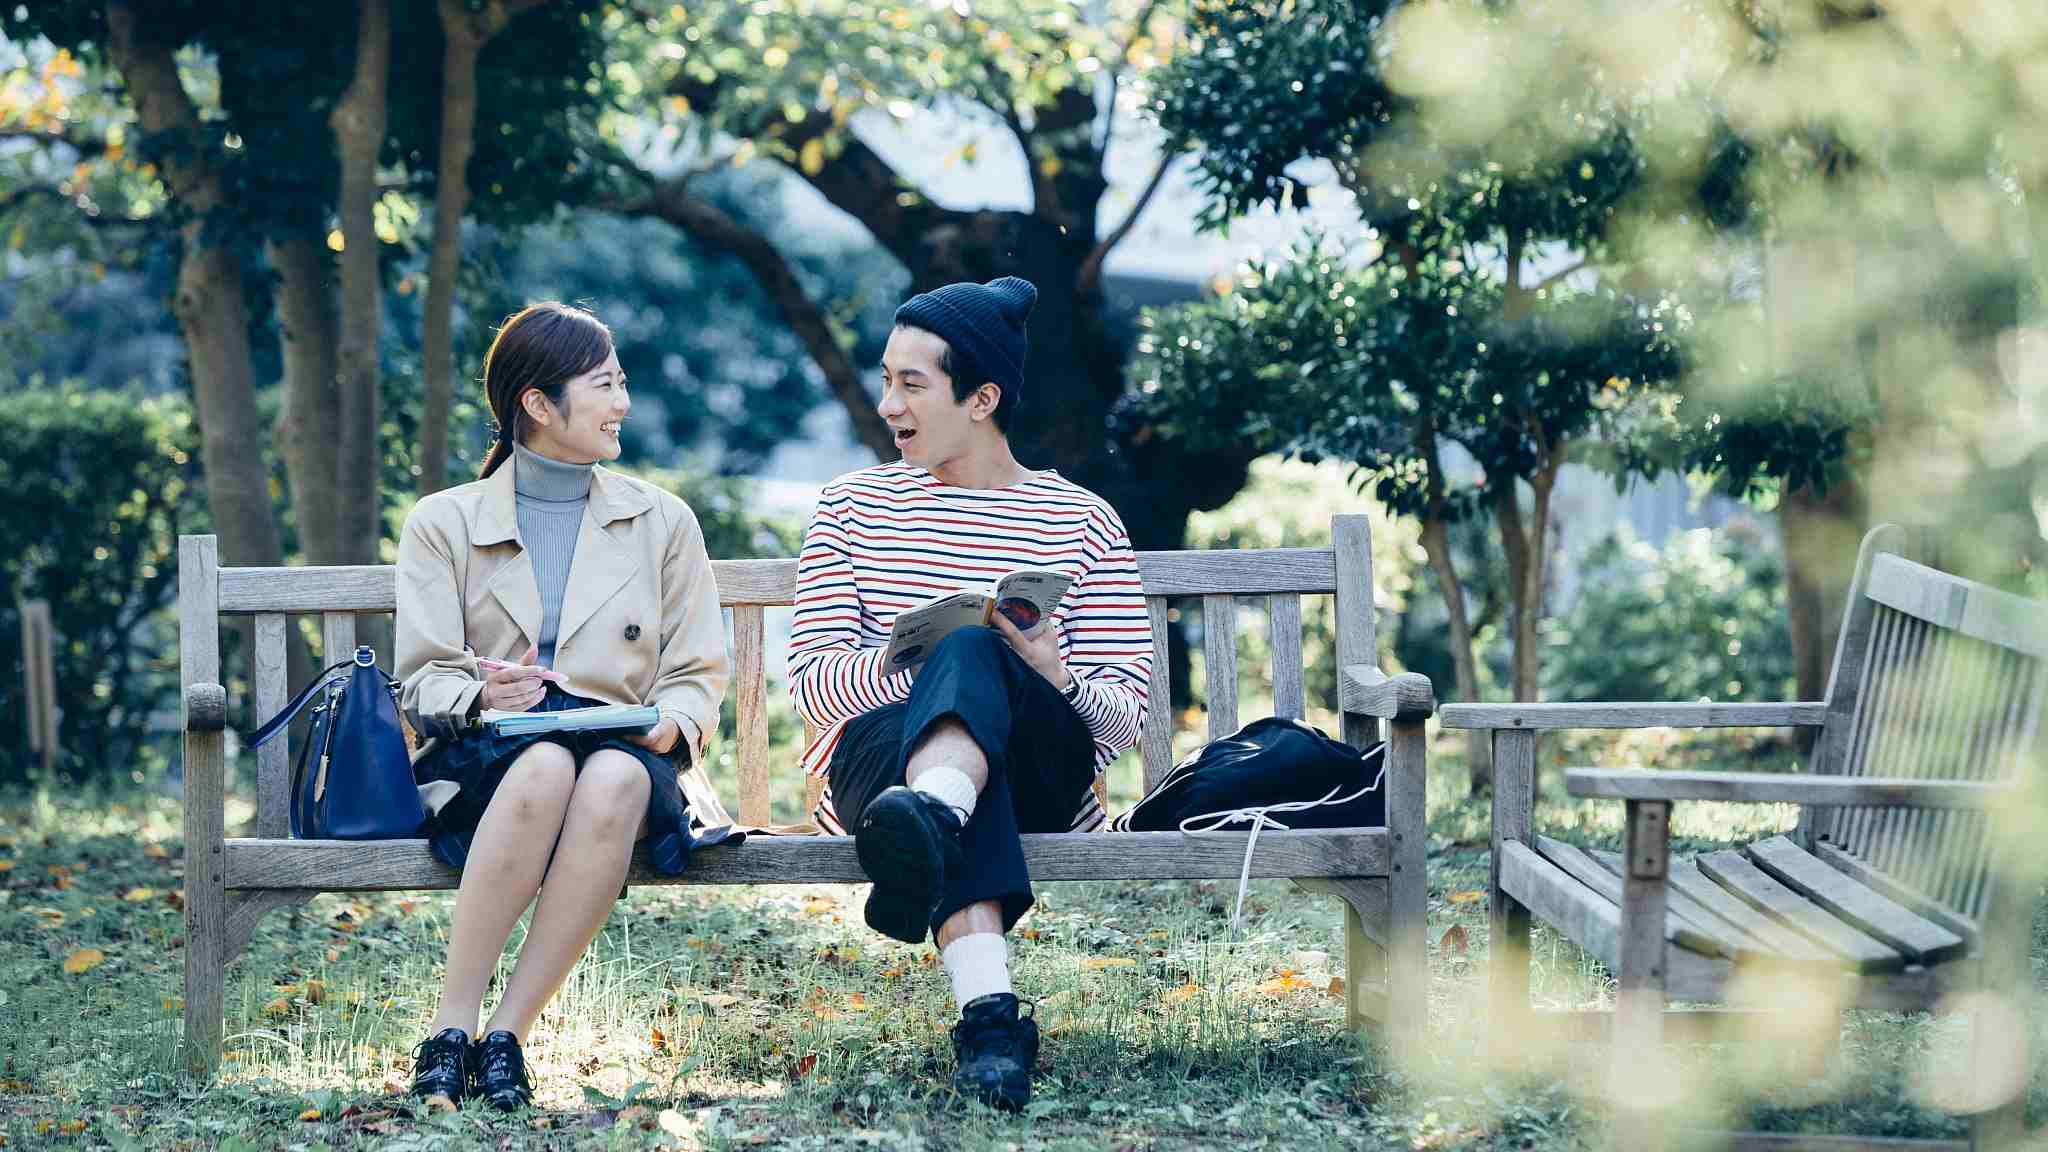 Romantic relationships motivate Chinese college students to